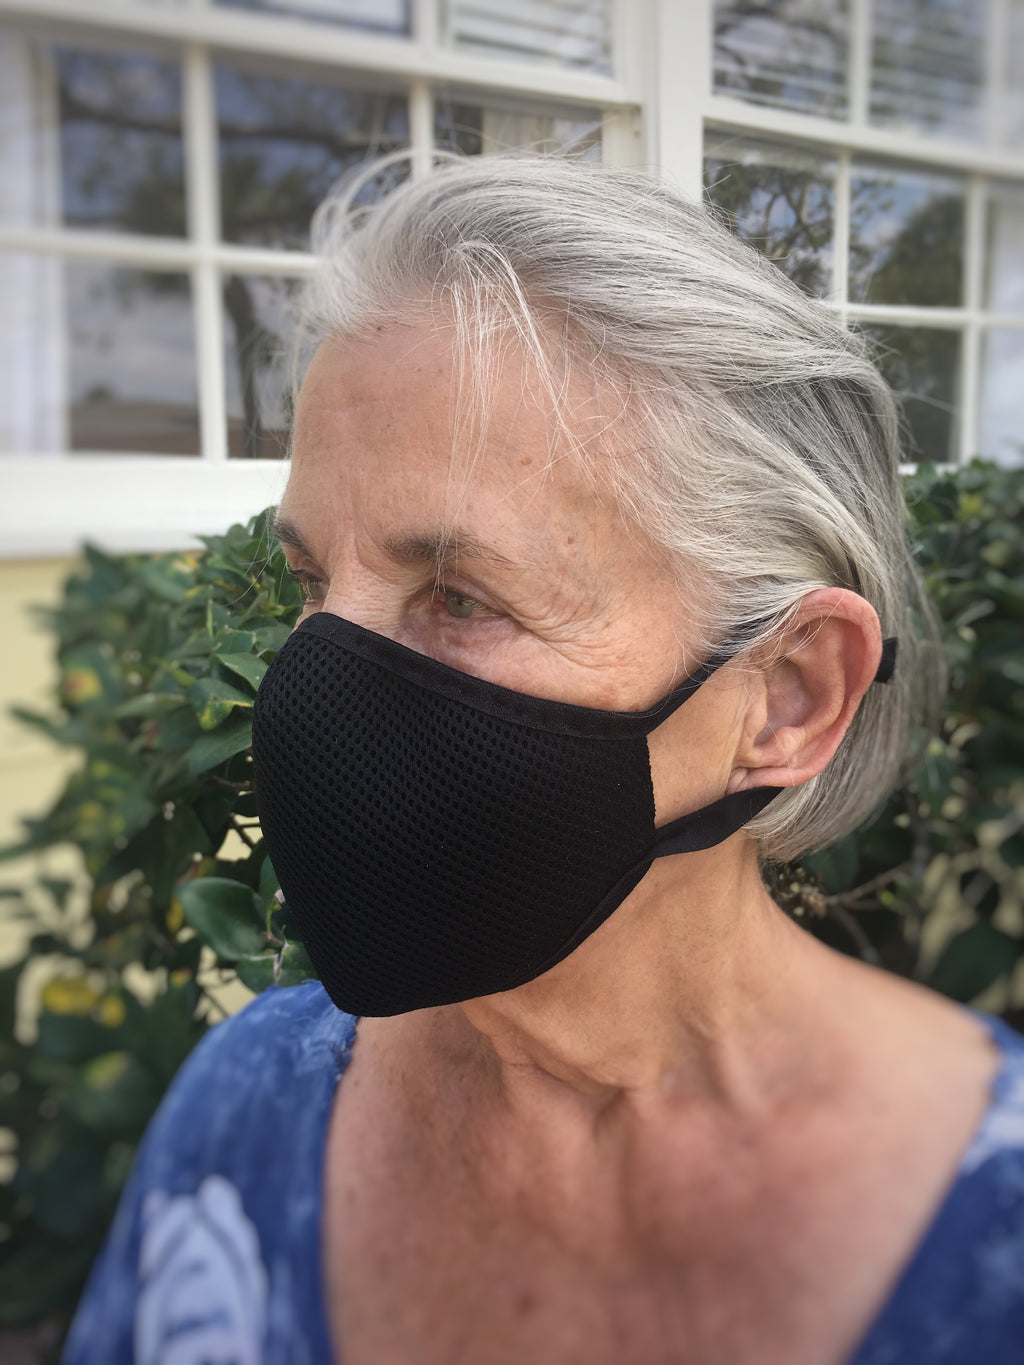 Just Breathe Mask 2 PACK - Antimicrobial with Wicking Ability